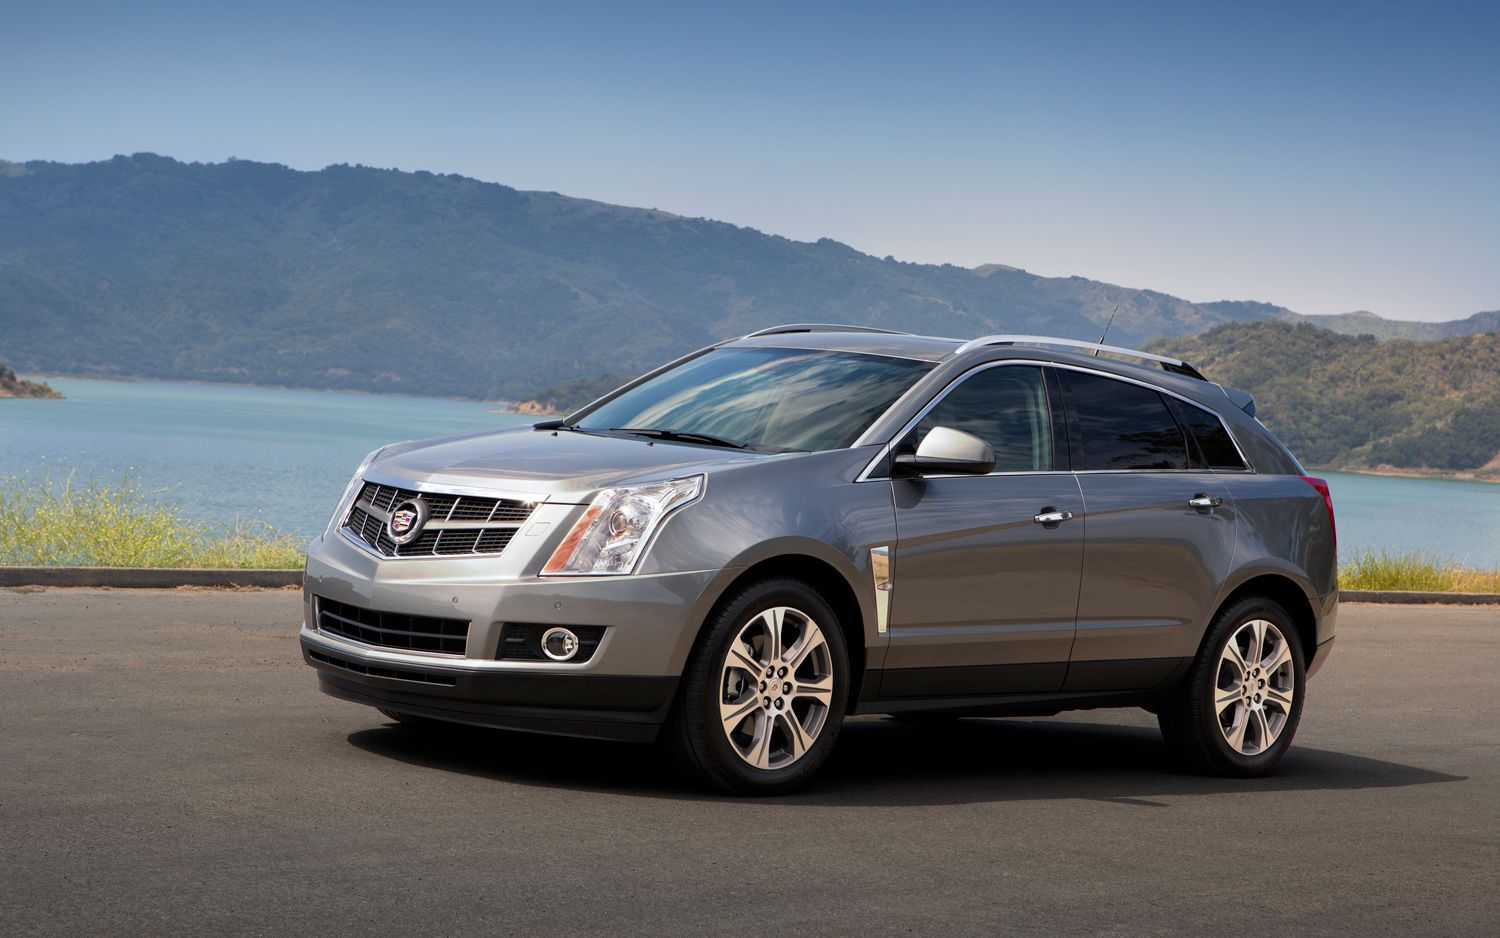 Recall Central Steering Issue In Chevy Captiva Cadillac Srx